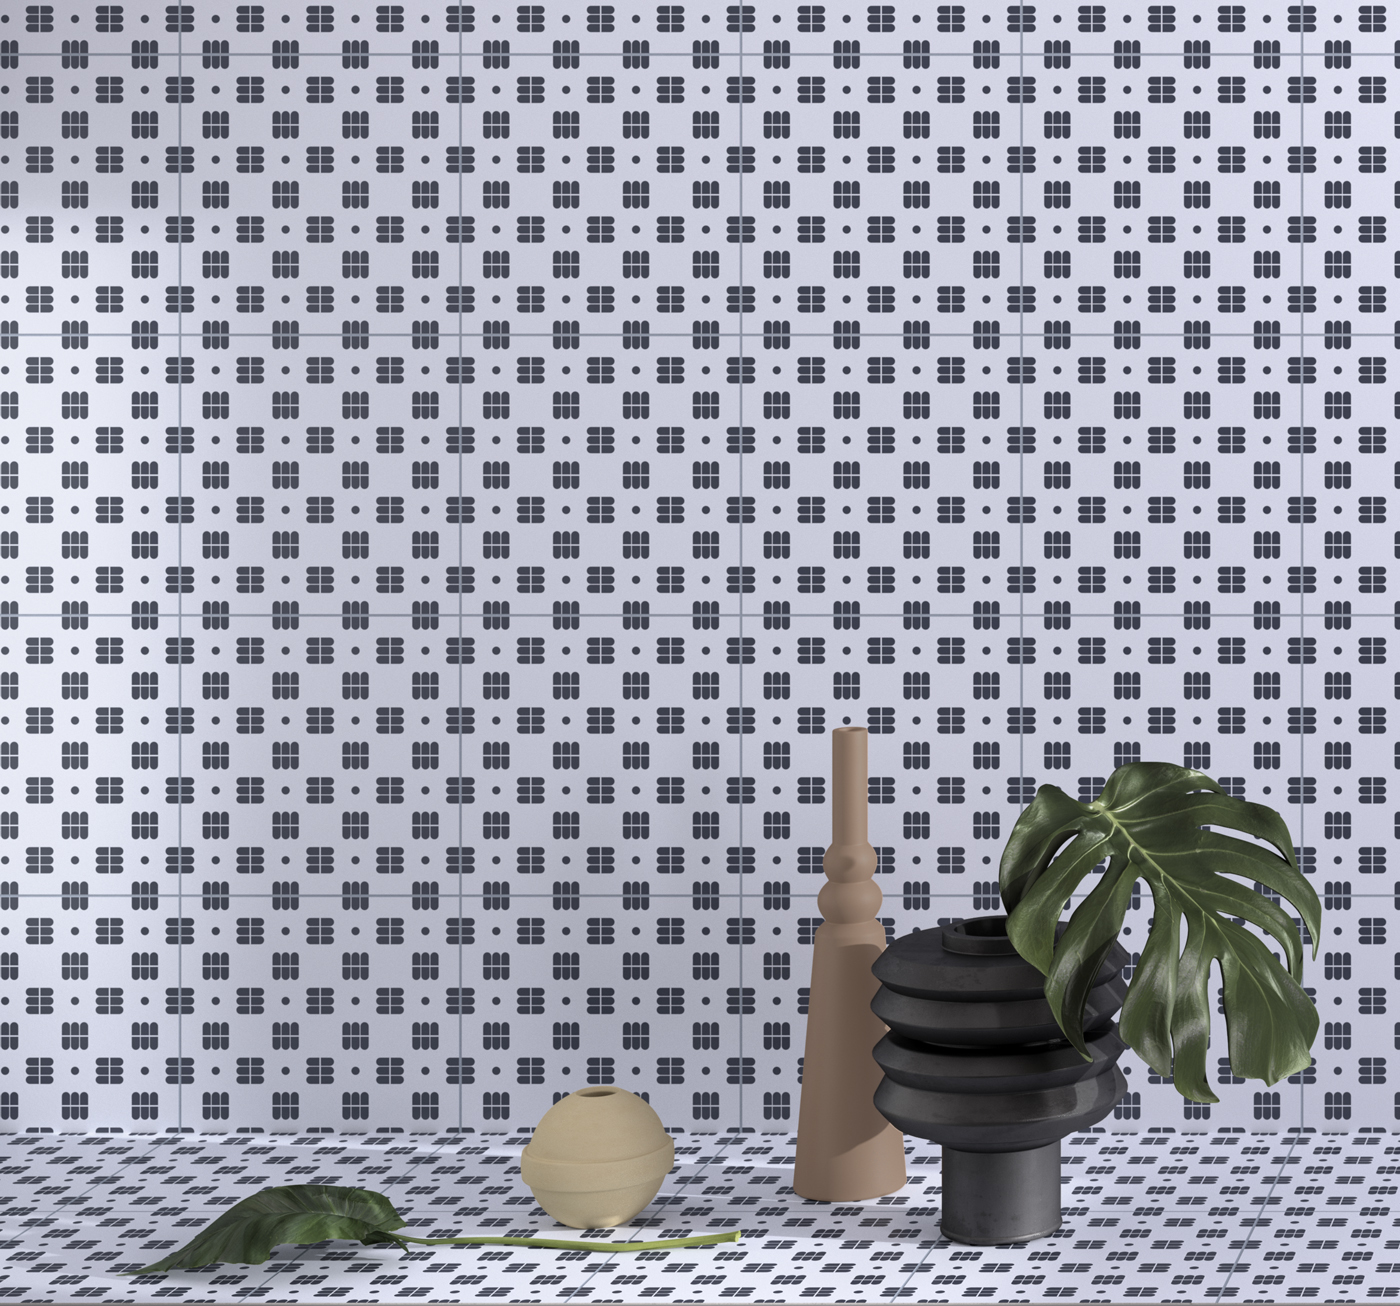 #CeramicaVogue - House of Tiles, 2018 - Architecture by #MarcanteTesta UdA - Image by #TerzoPiano - #bathroom #props